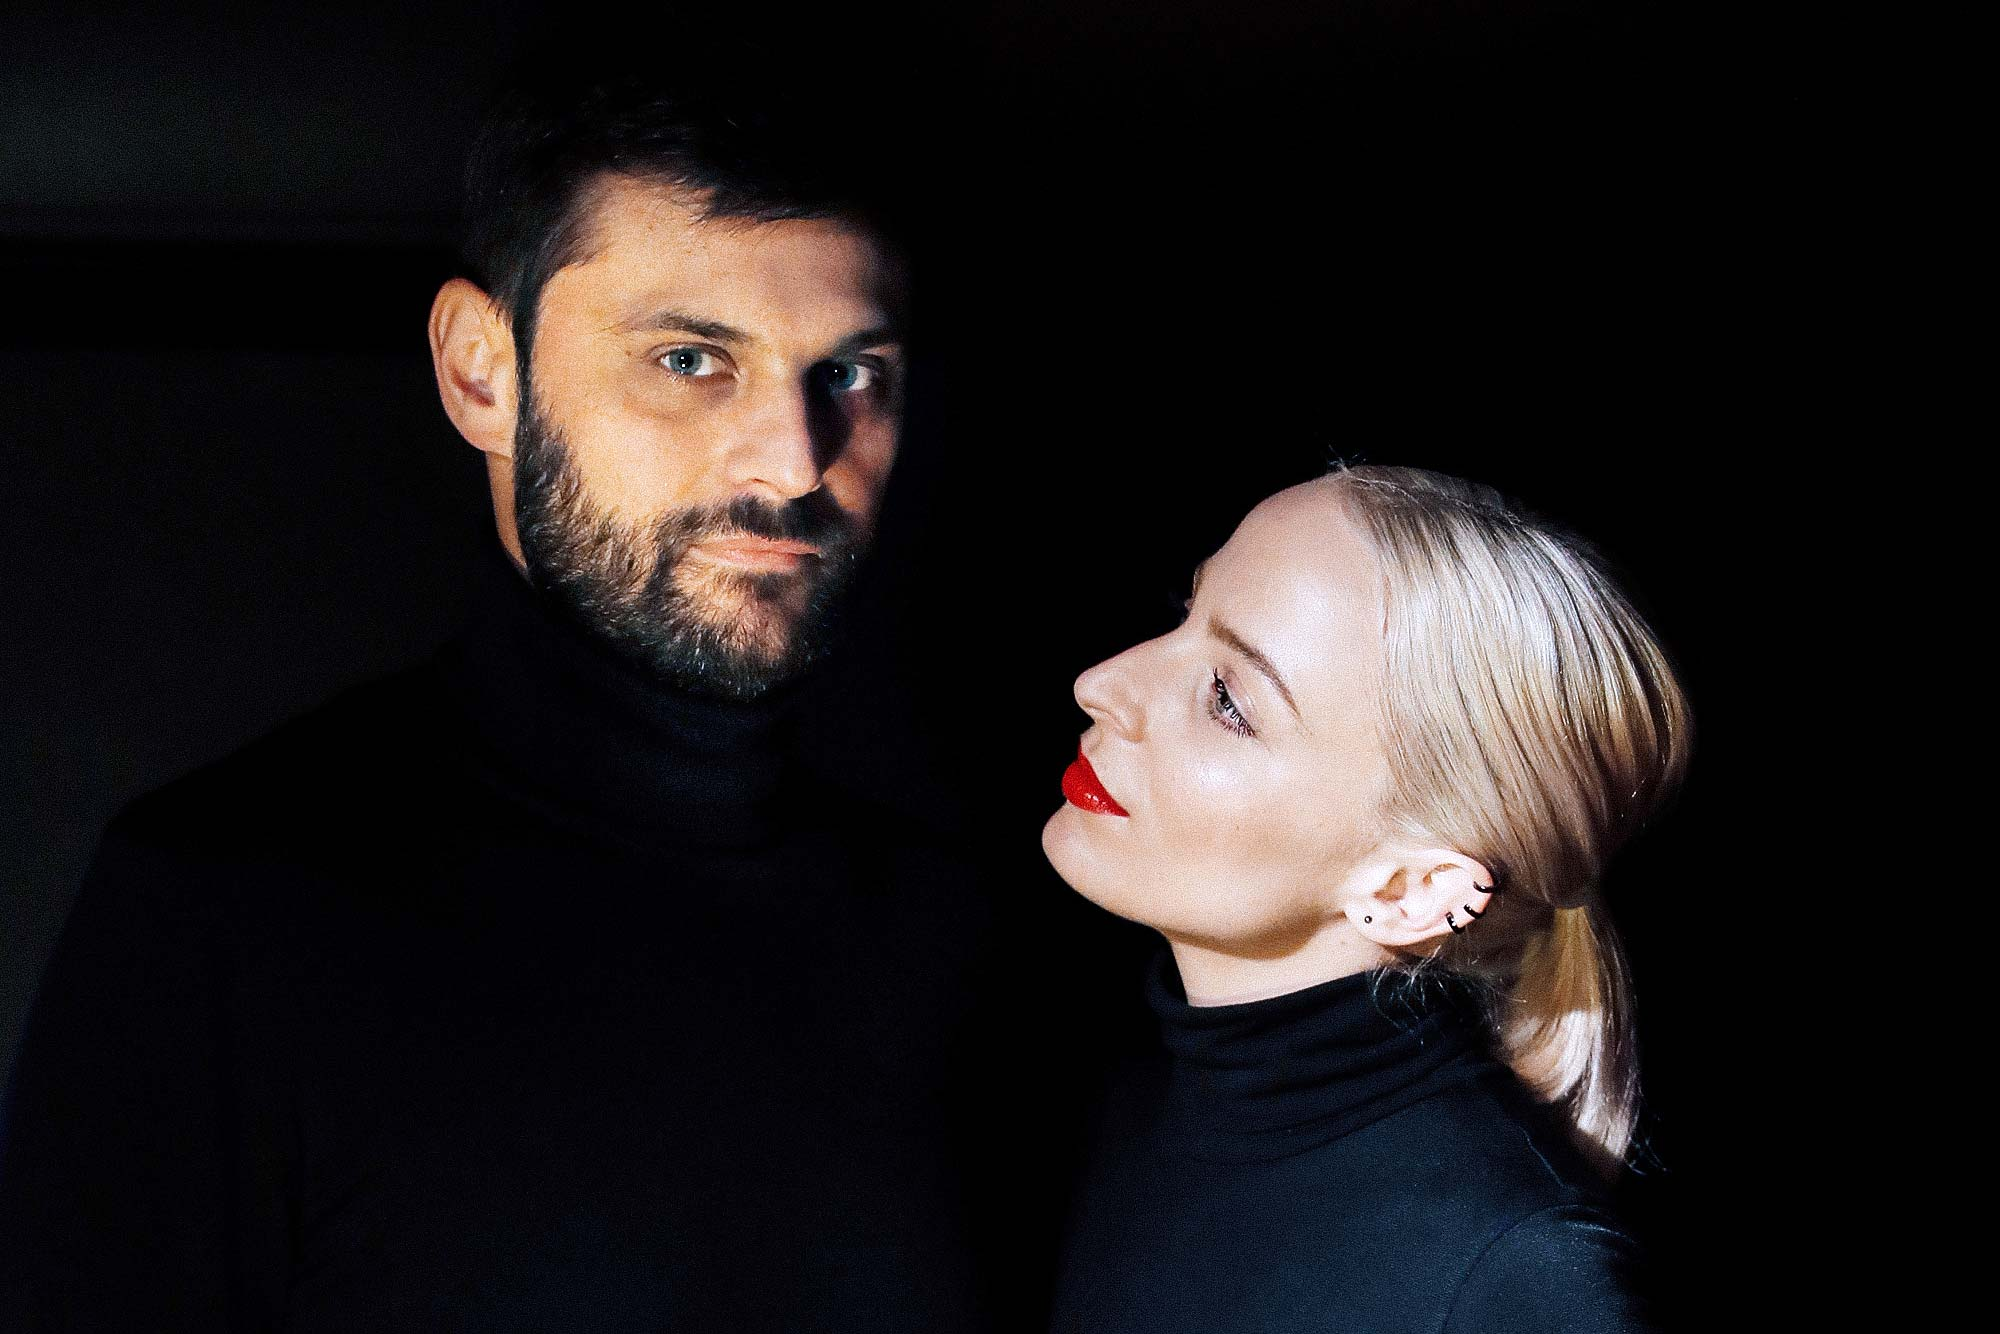 Musicians Émilie Satt and Jean-Karl Lucas of Madame Monsieur, who represent France in the Eurovision Song Contest 2018, posing after an interview with Reuters in Paris on Jan. 31.